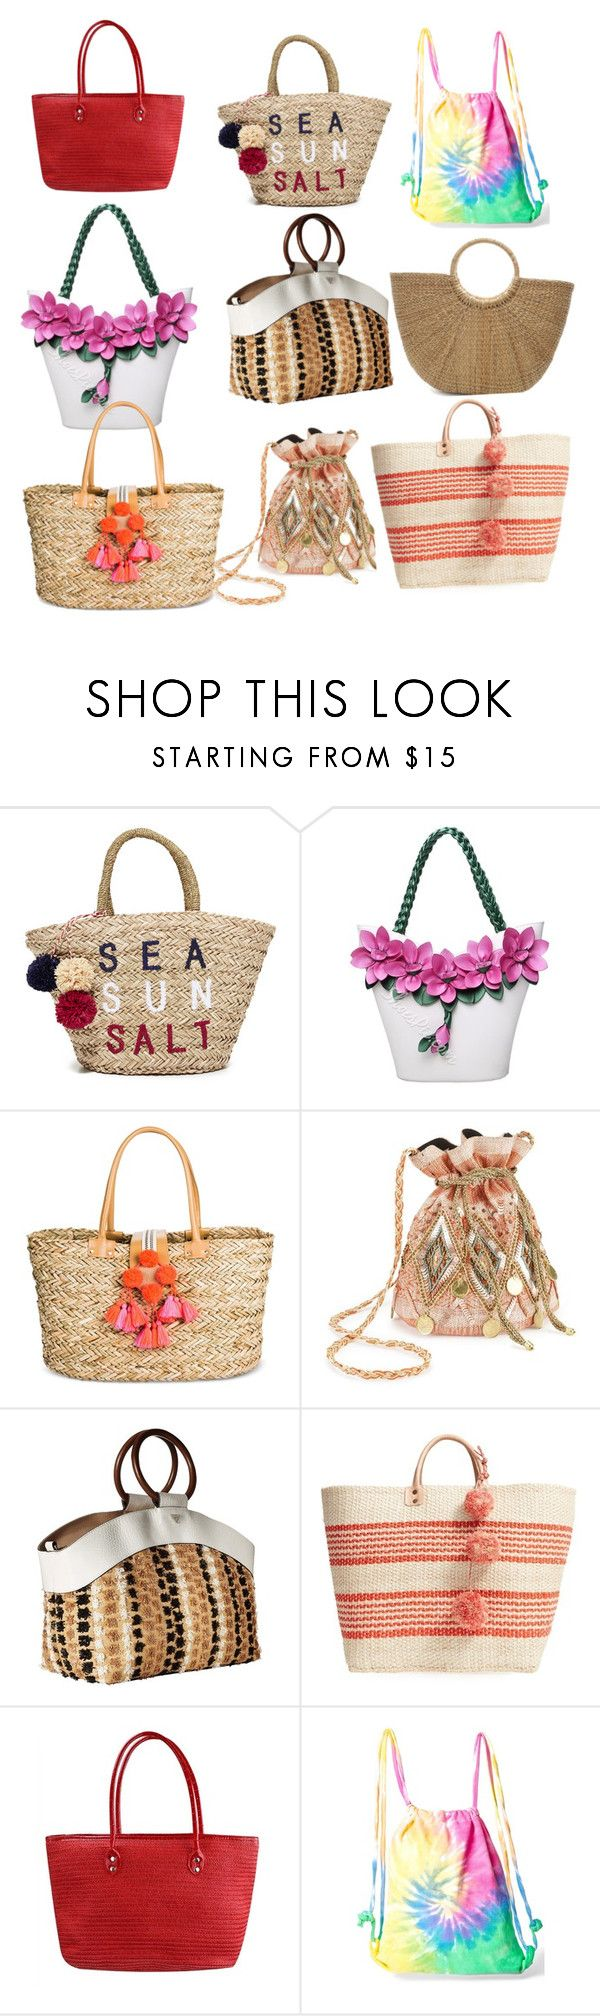 """Beach bags"" by gwenblondy ❤ liked on Polyvore featuring Sundry, Merona, Miss Selfridge, Sam Edelman, Mar y Sol and Colortone"